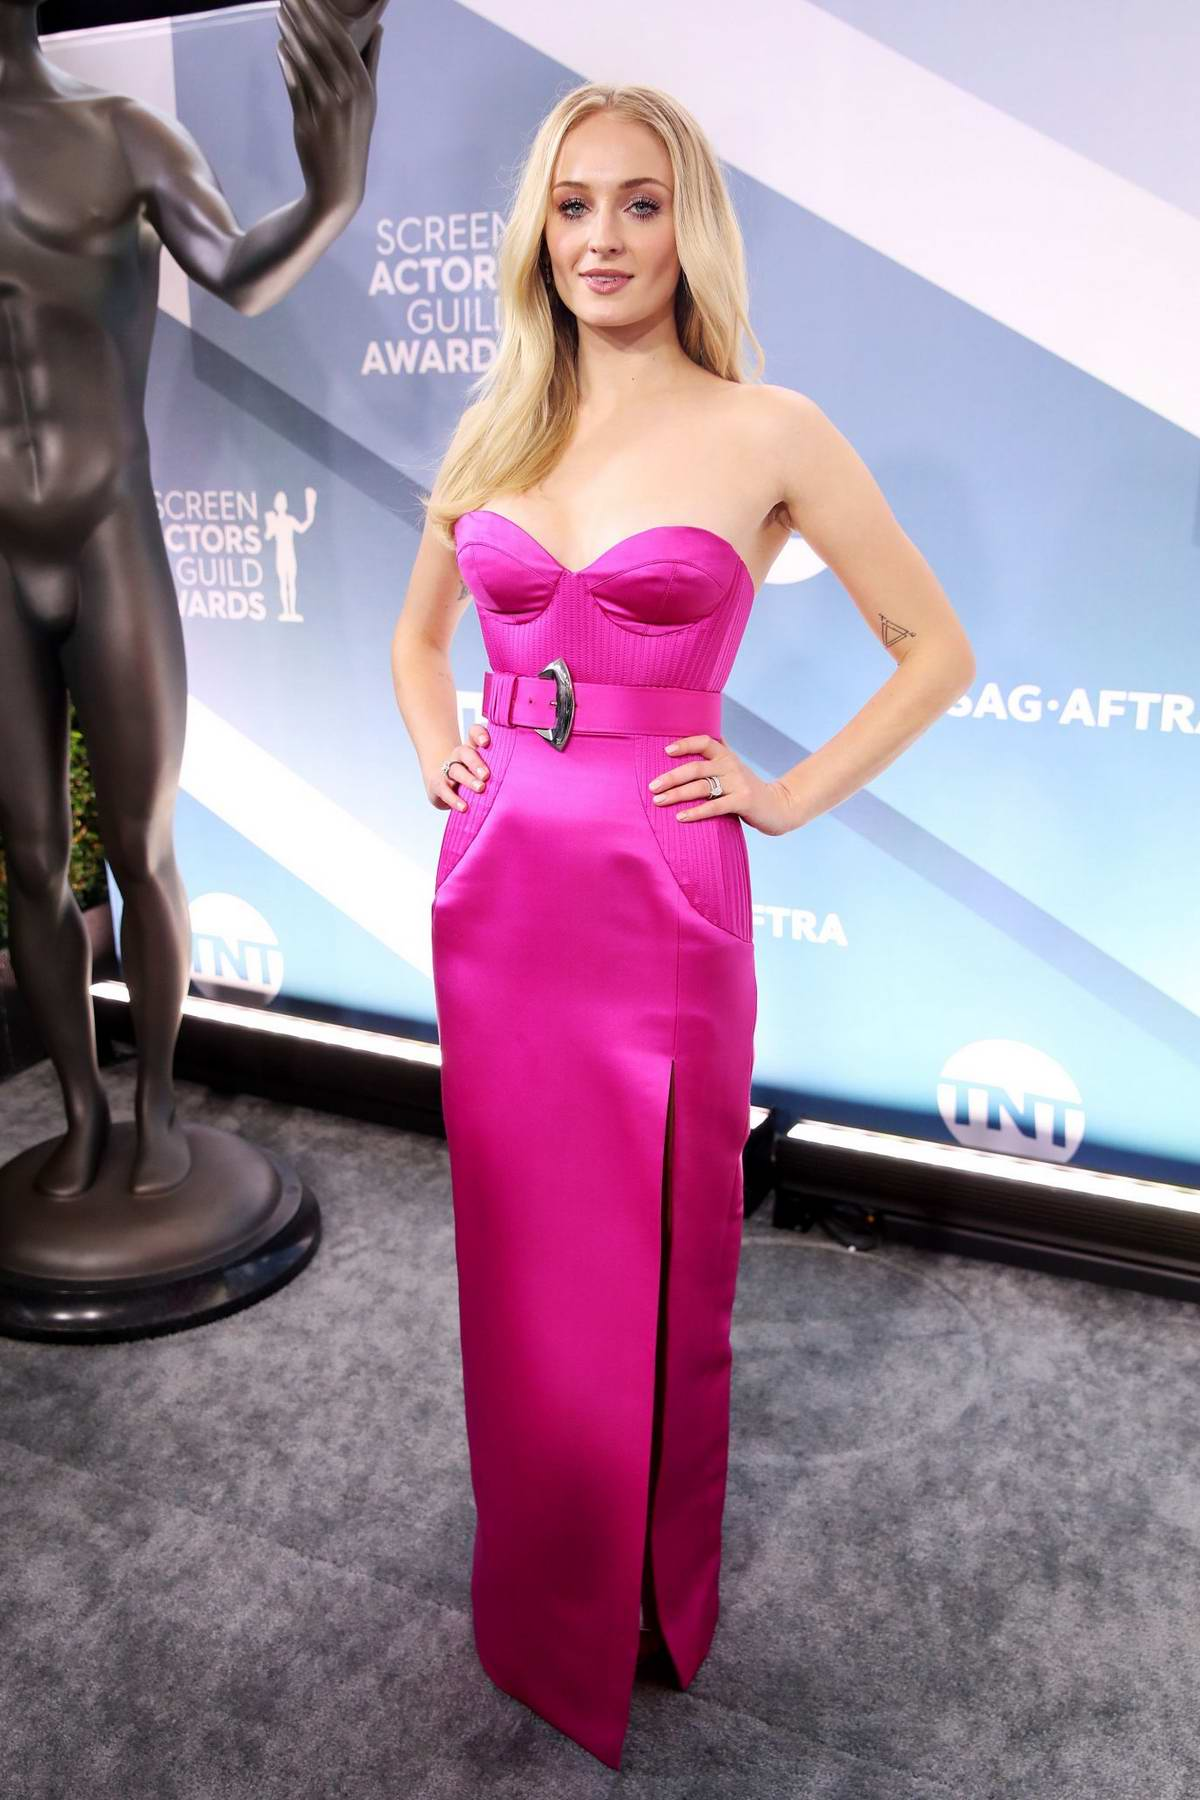 Sophie Turner attends the 26th Annual Screen Actors Guild Awards at the Shrine Auditorium in Los Angeles